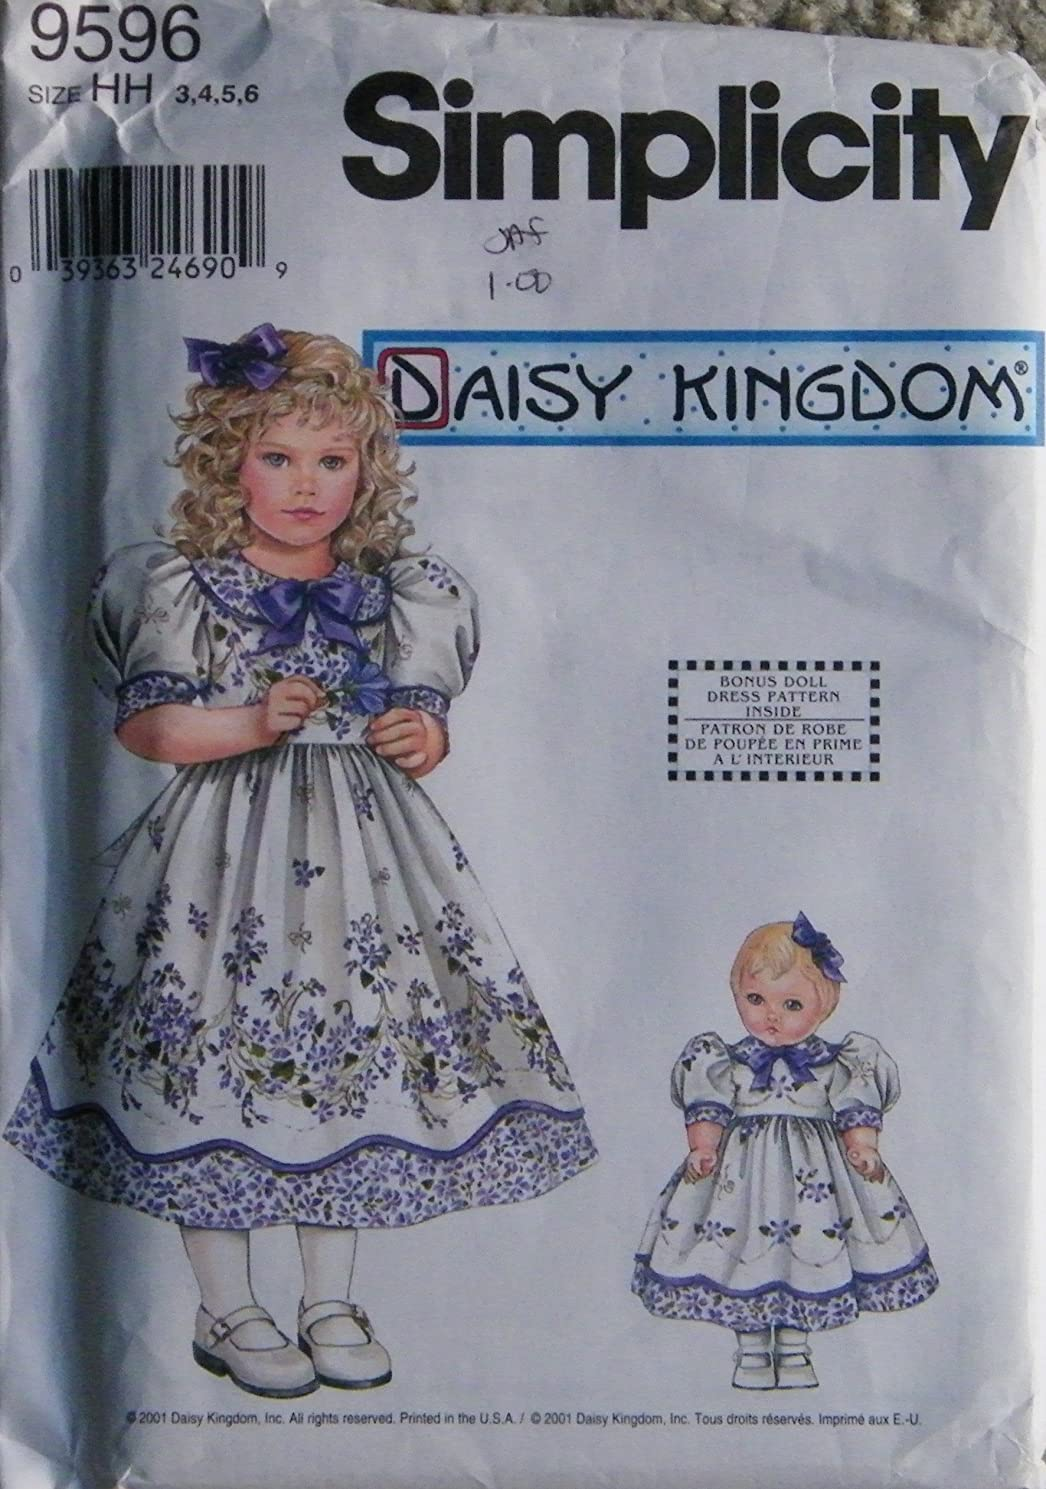 Simplicity Daisy Kingdom Pattern 9596 girls dress and doll dress